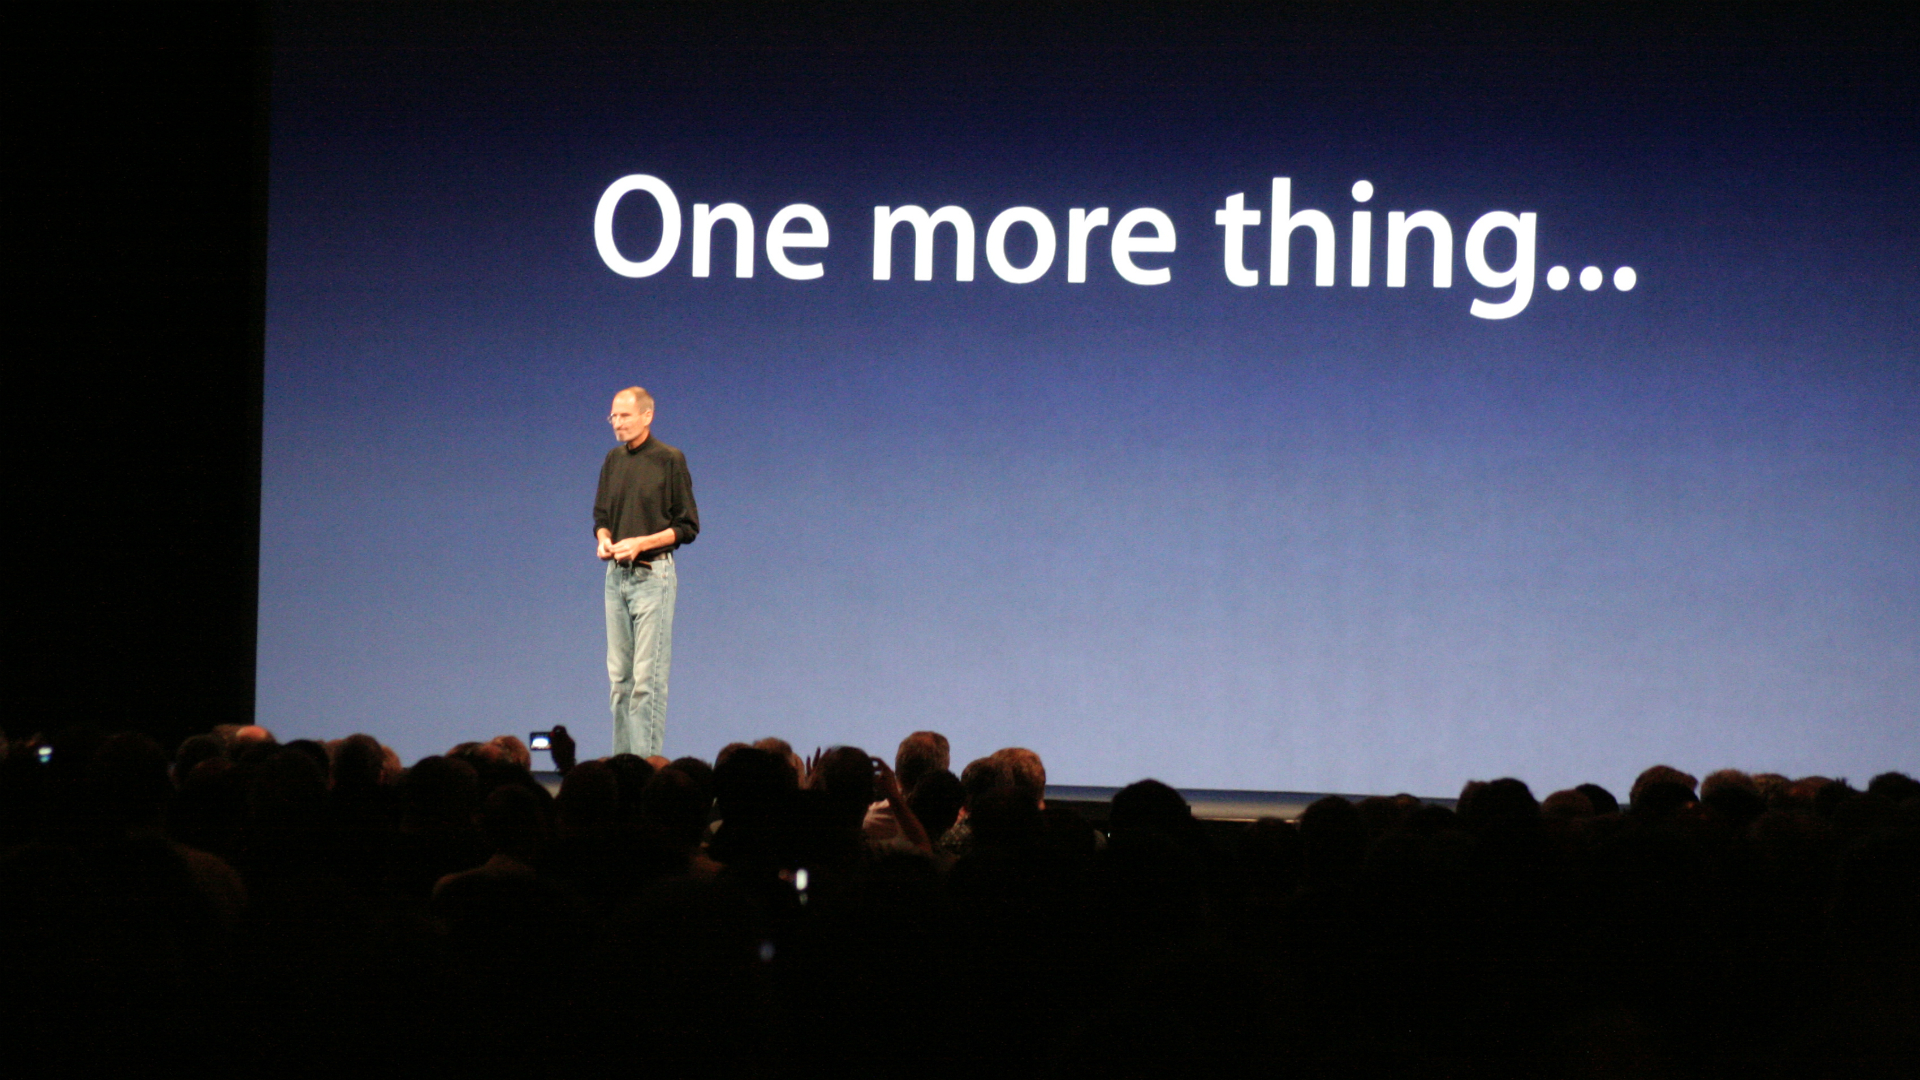 steve jobs apple one more thing 1